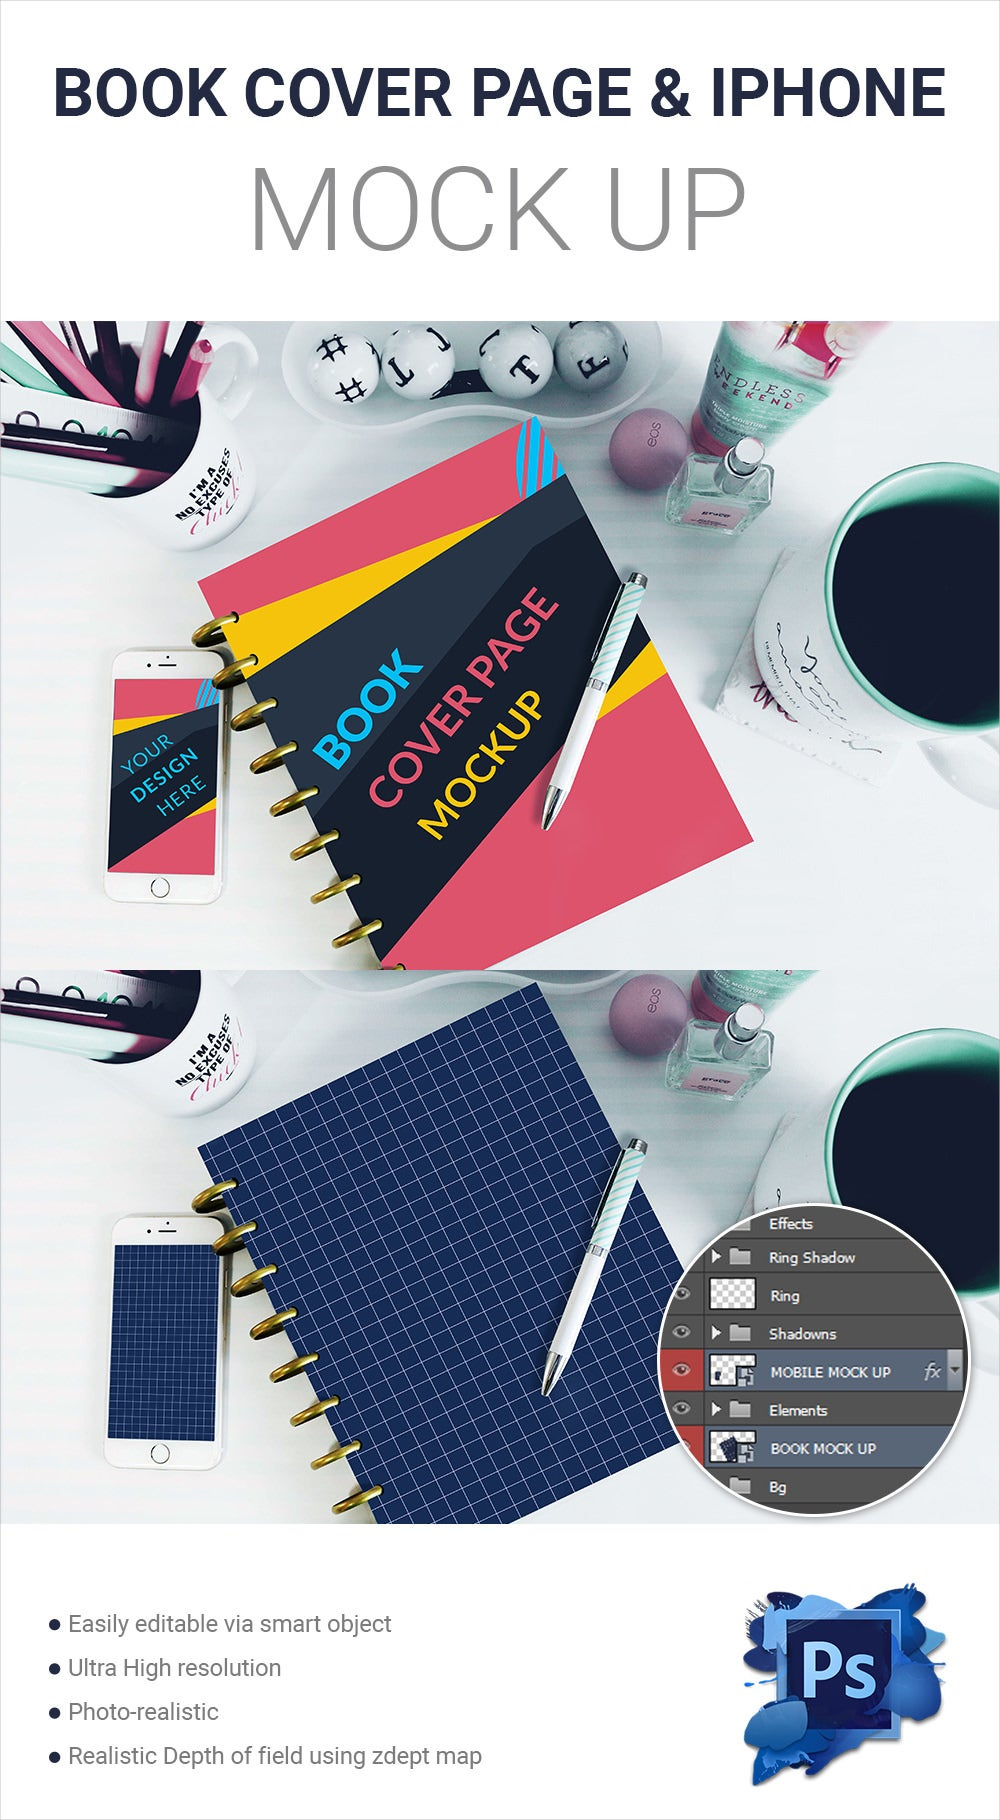 book cover design psd illustration formats book cover page iphone mockup